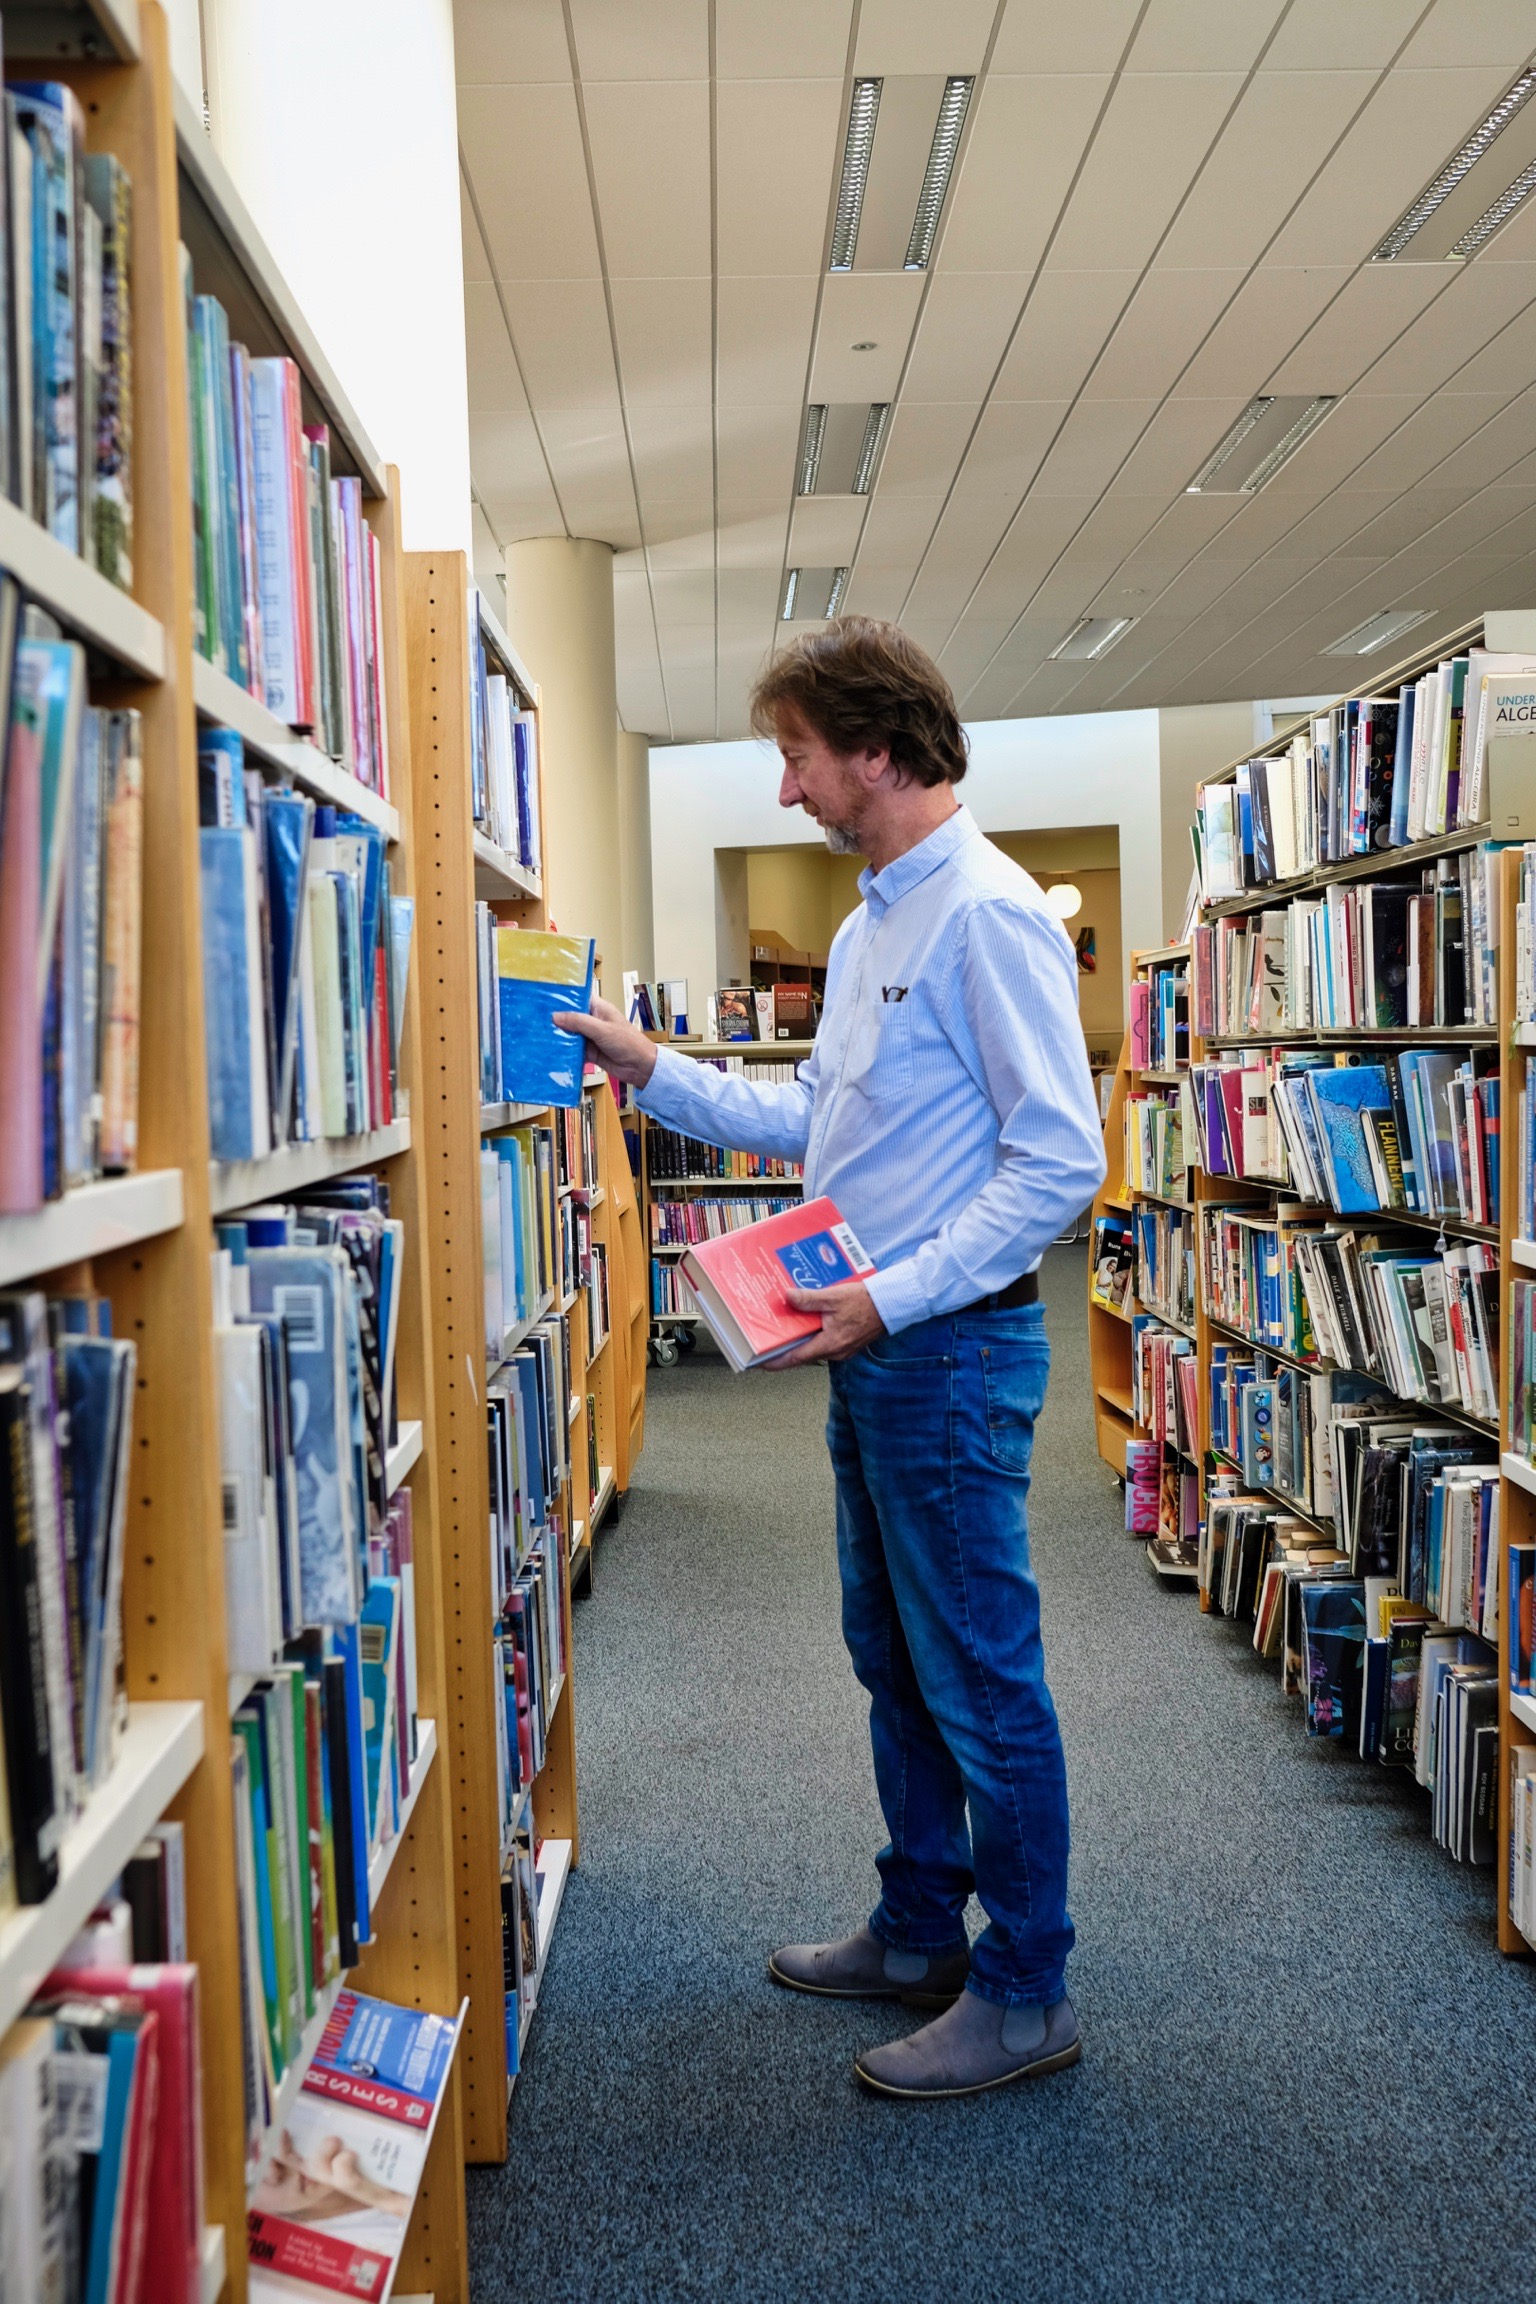 Carlow Central Library